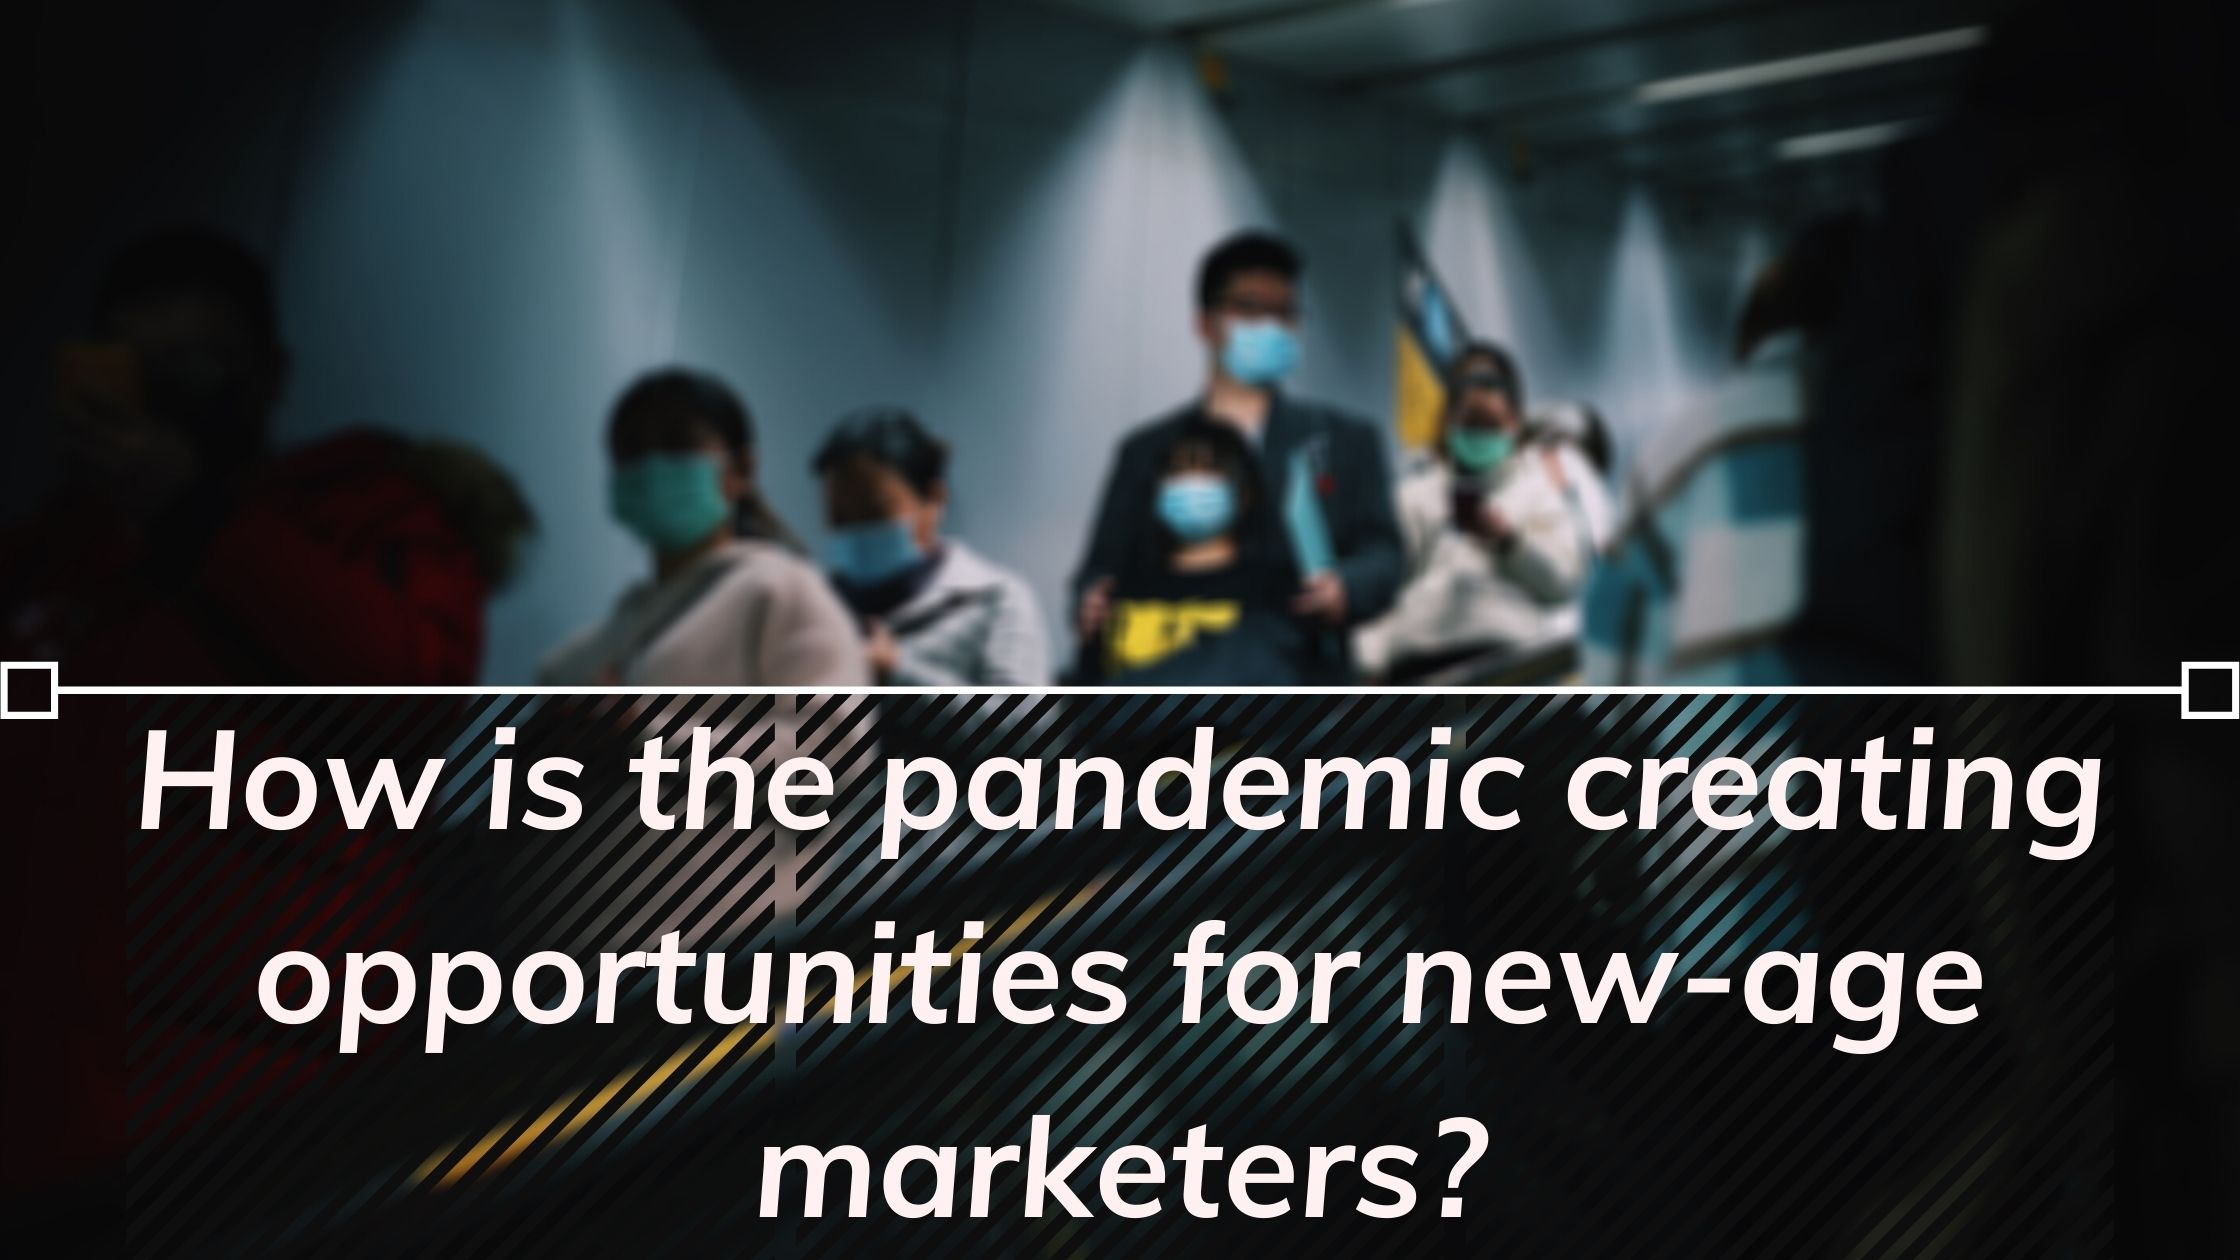 How is the pandemic creating opportunities for new-age marketers?